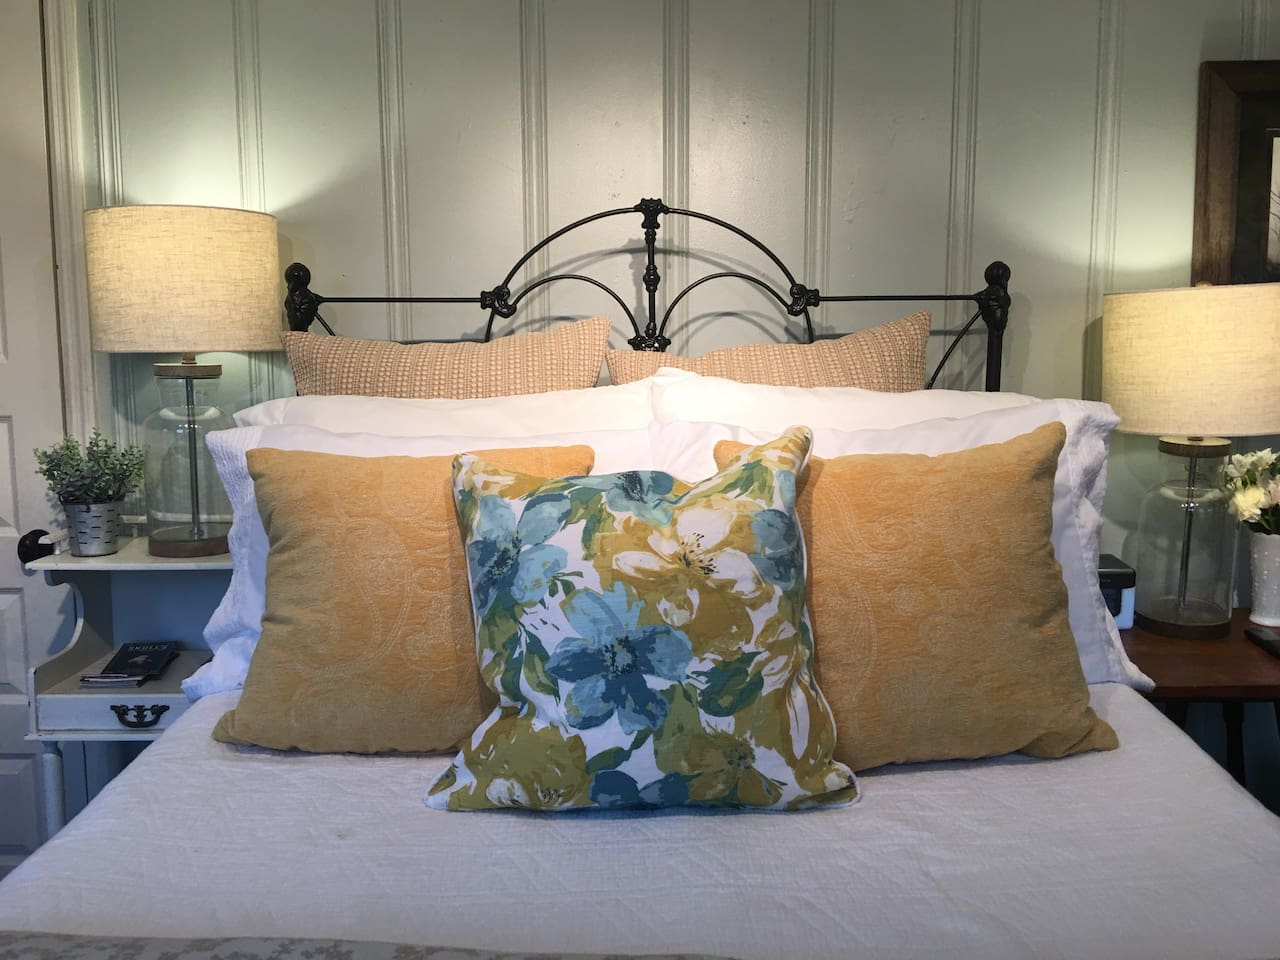 Our lovely suite all ready for Spring.  We  look forward to hosting you at our farm!